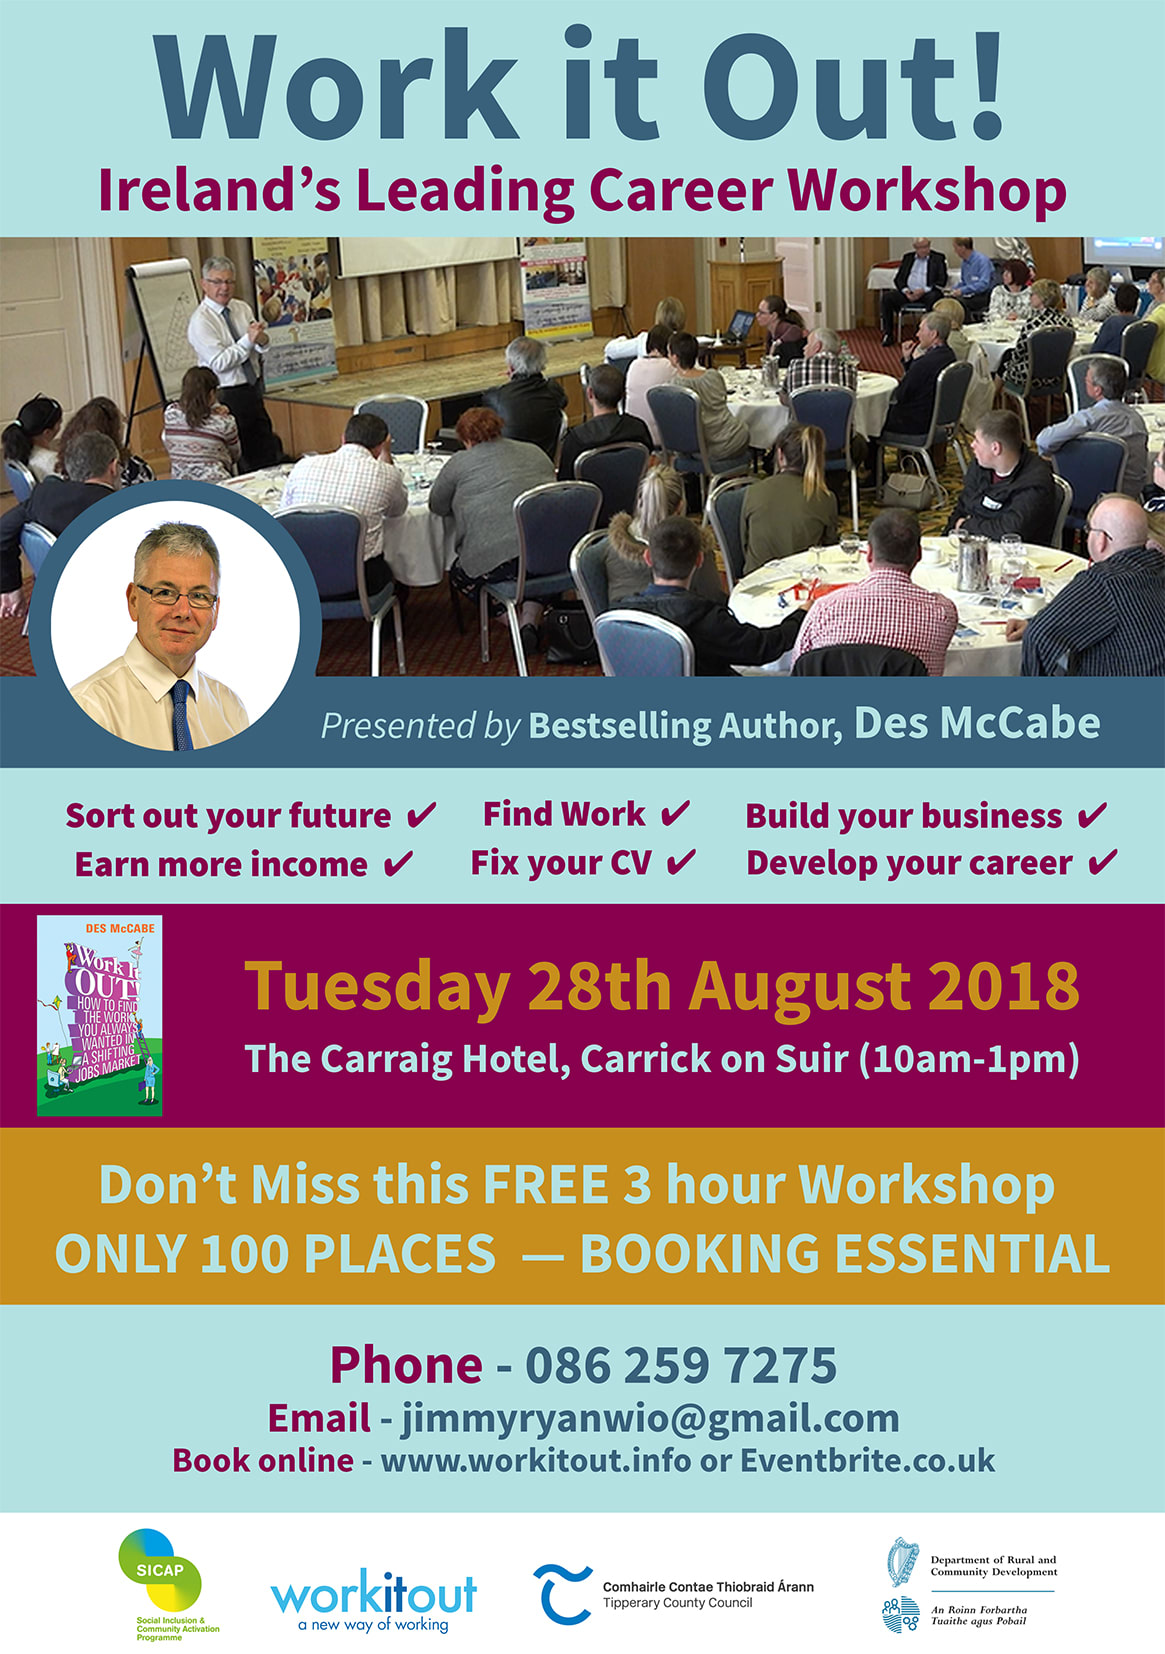 Work it Out! Workshop - Carrick on Suir